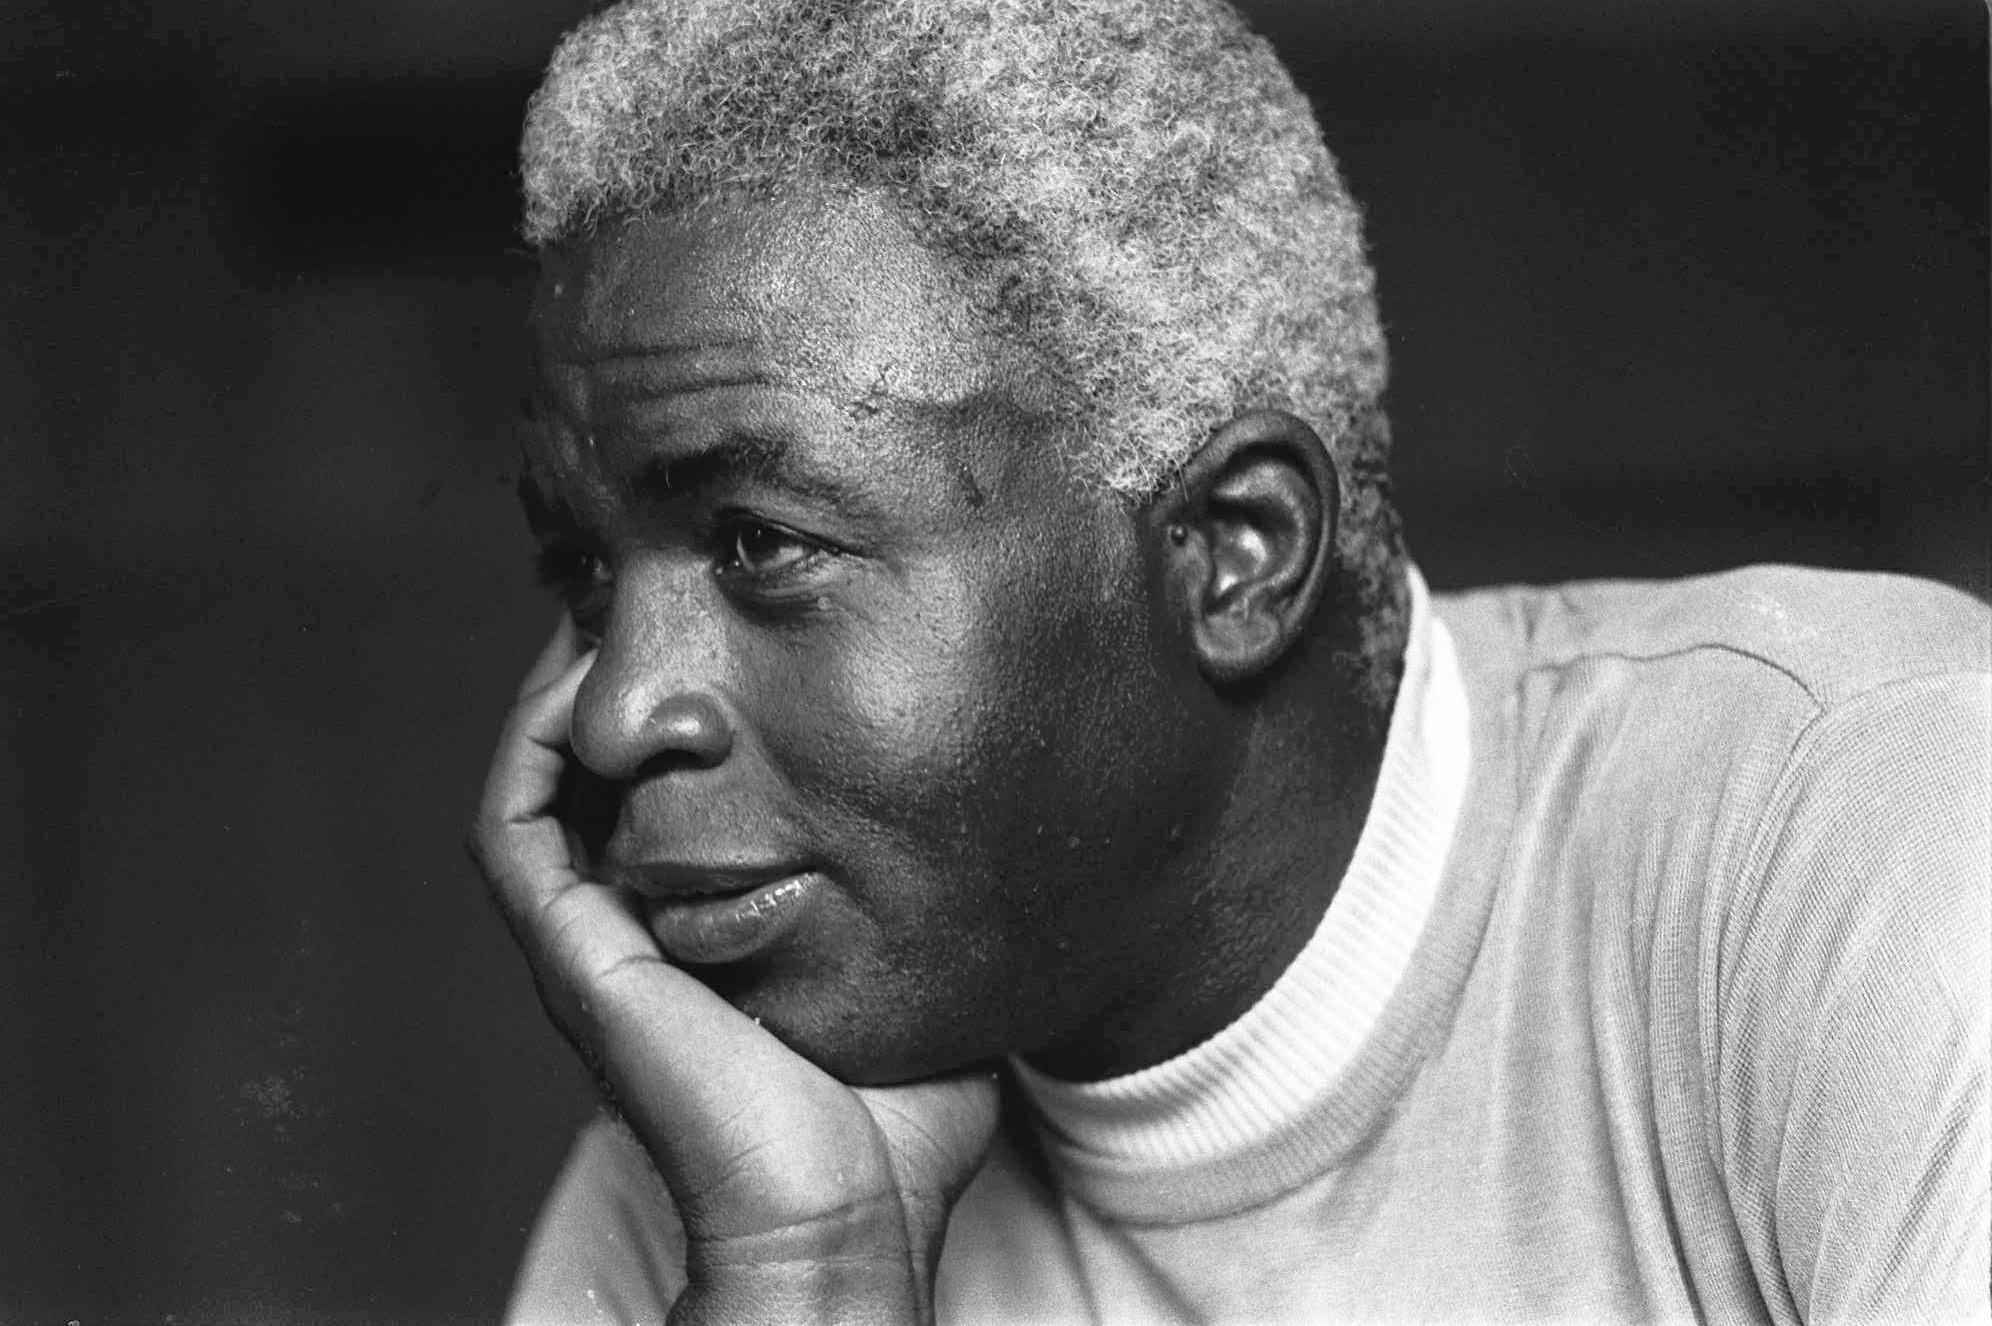 the life influence and death of jackie roosevelt robinson Jackie robinson, byname of jack roosevelt robinson, (born january 31, 1919, cairo, georgia, us—died october 24, 1972, stamford, connecticut), the first black baseball player to play in the american major leagues during the 20th century.